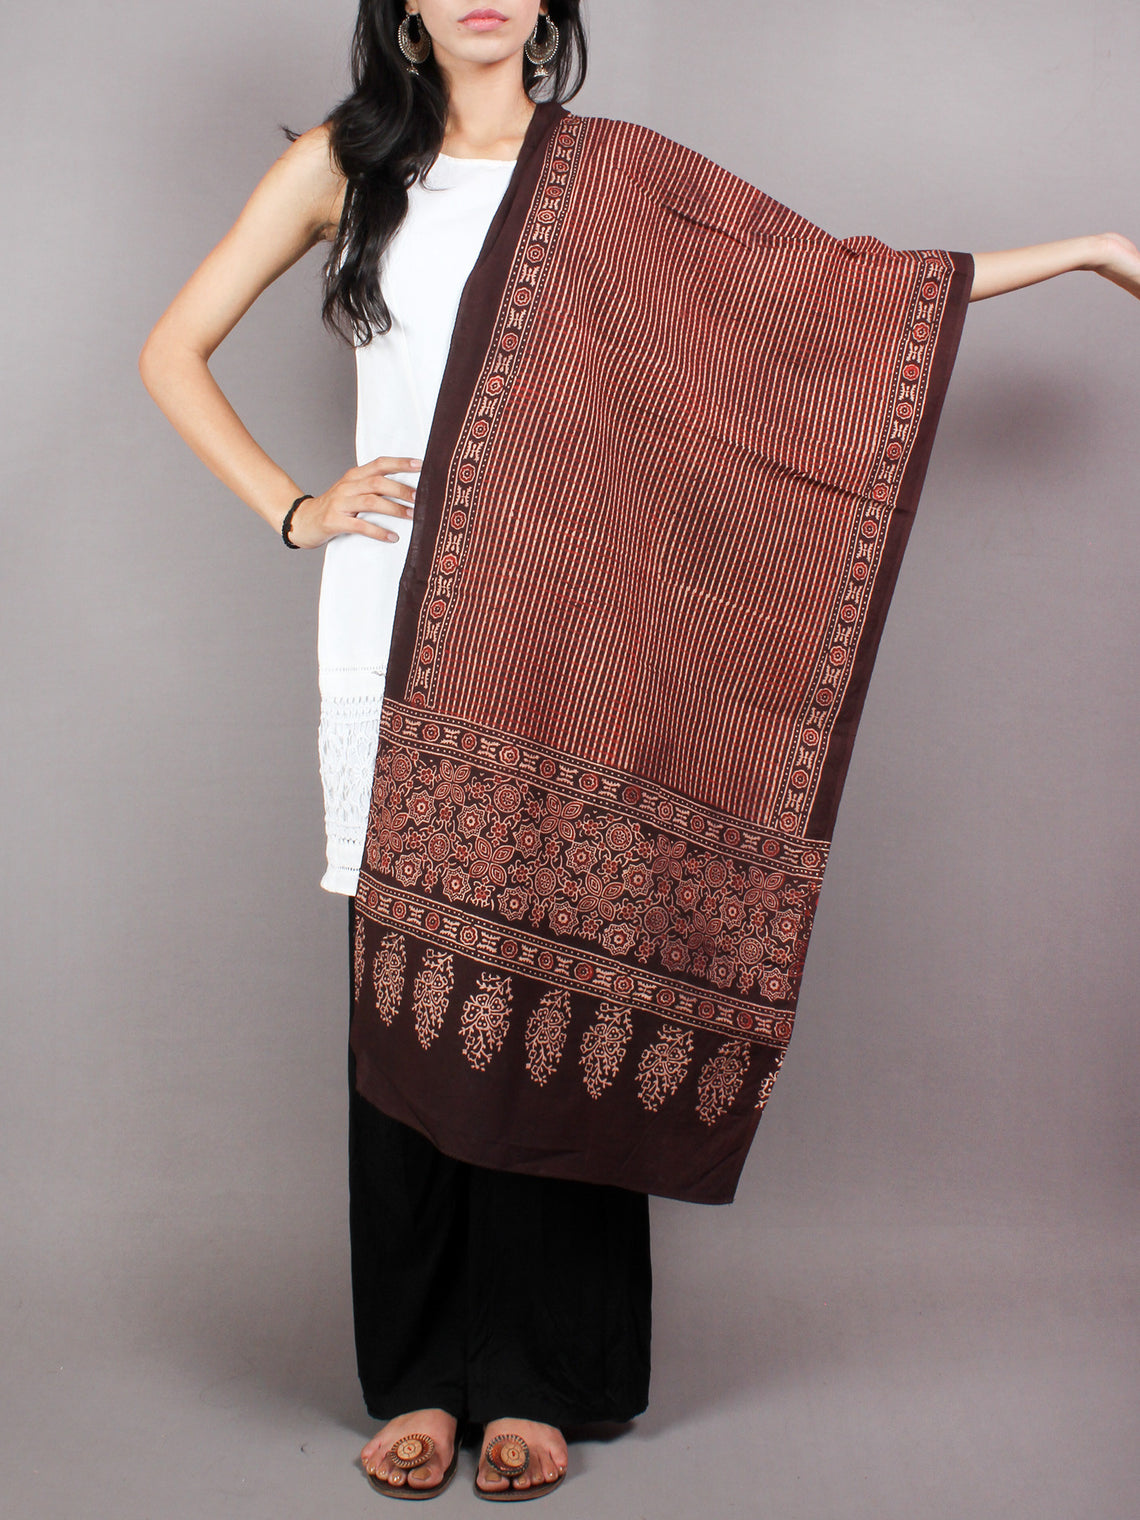 Brown Beige Red Mughal Nakashi Ajrakh Hand Block Printed Cotton Stole - S6317063